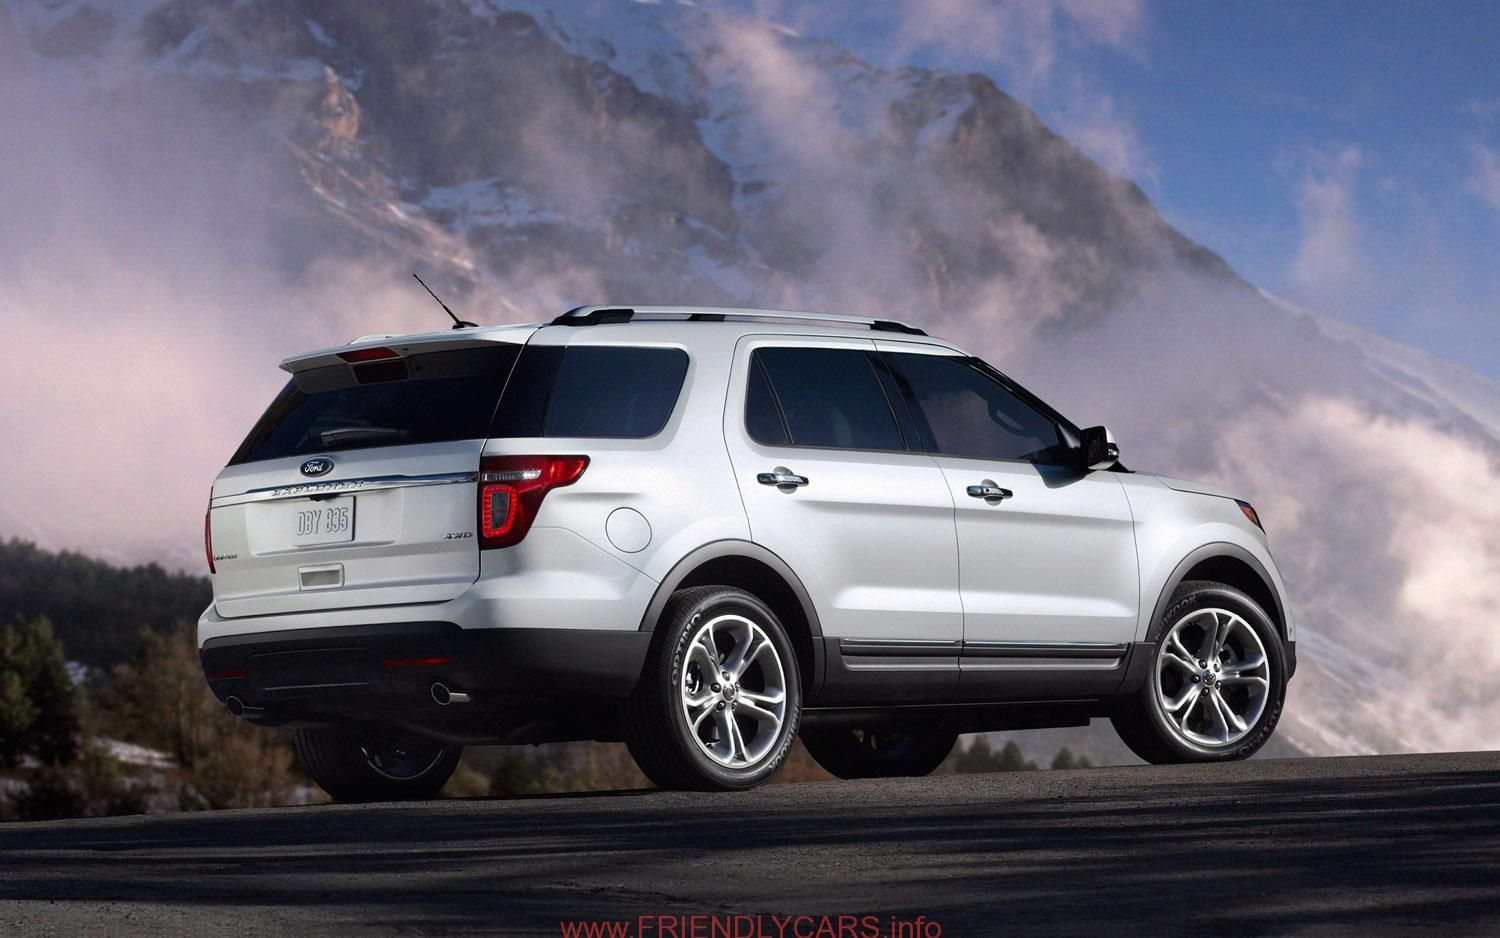 Ford Explorer 2014 Trunk Car Images Hd alifiah sites